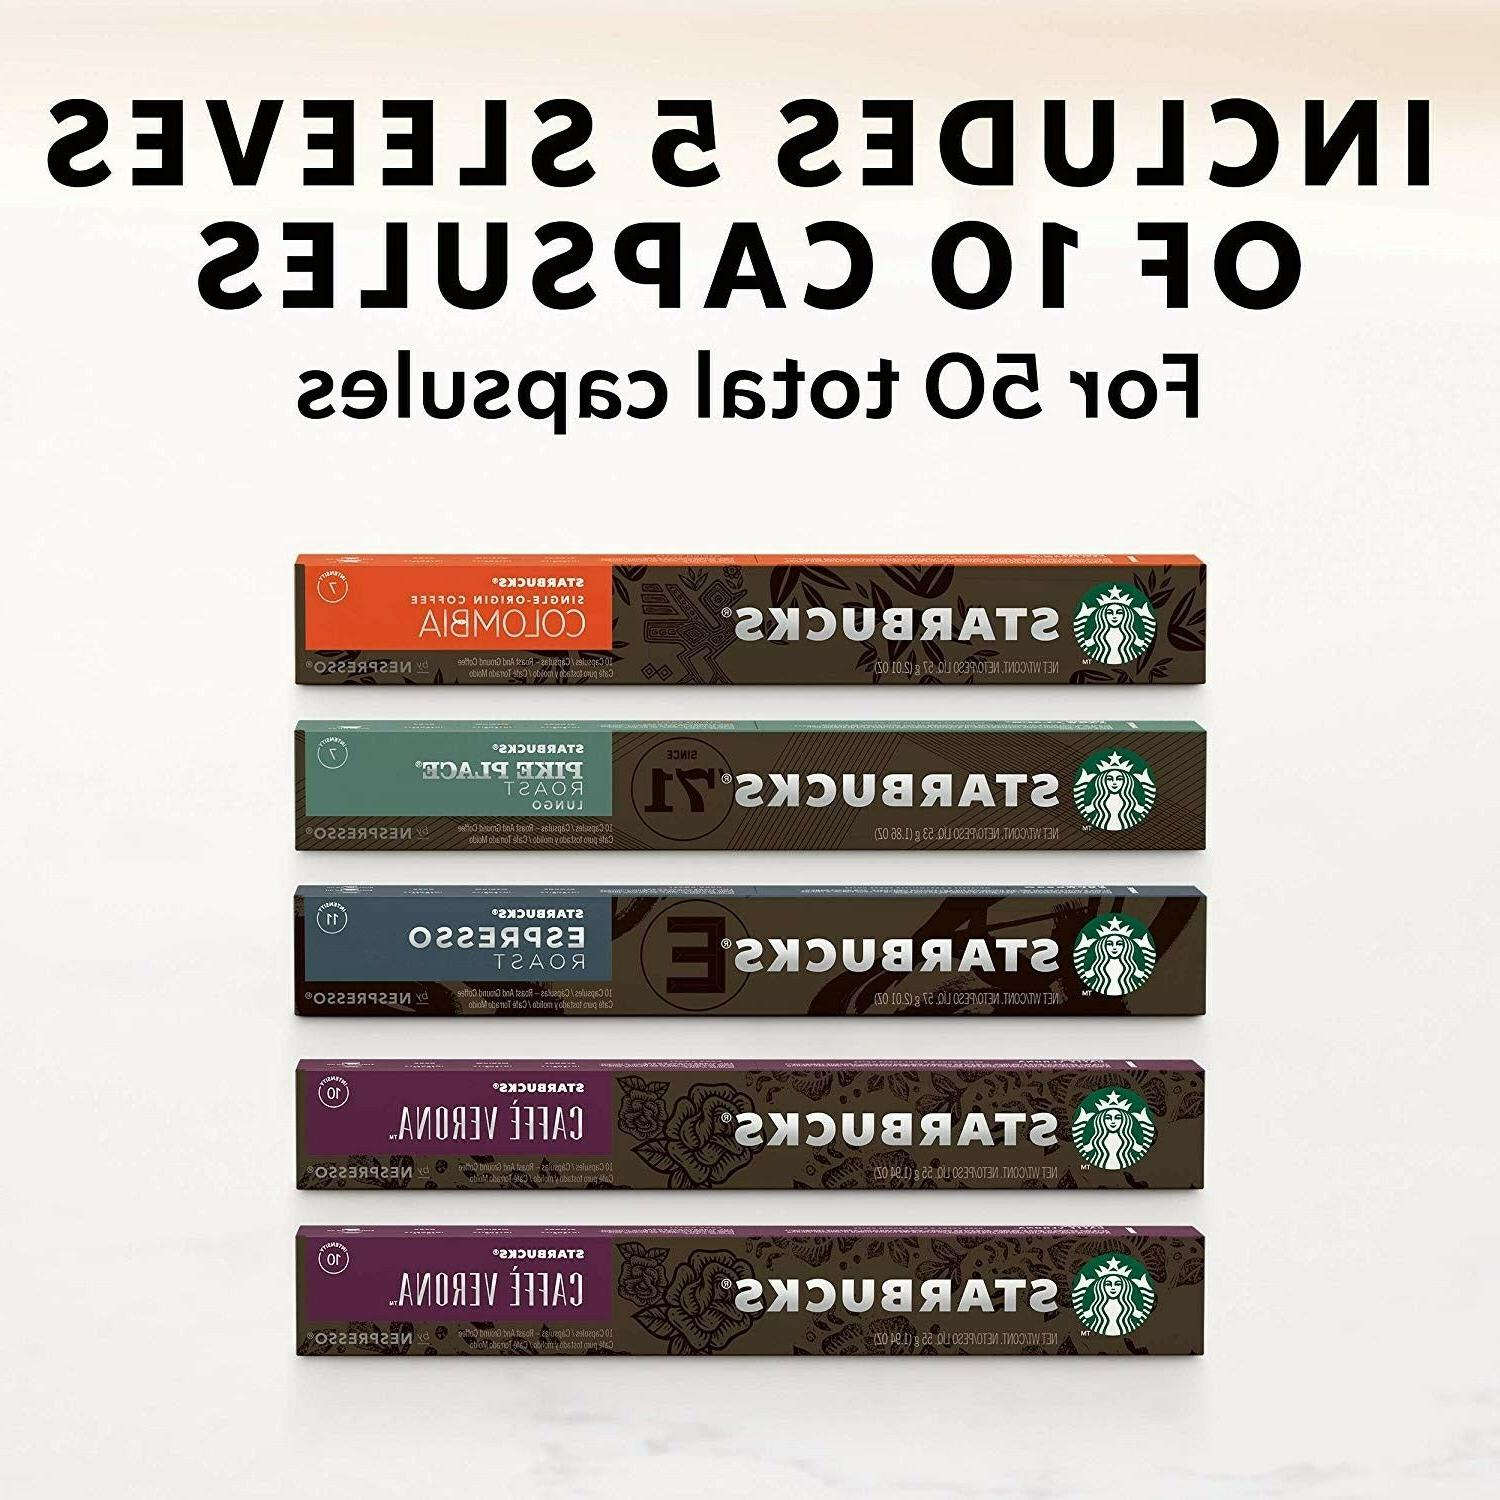 Starbucks by Variety Pack (50-count serve